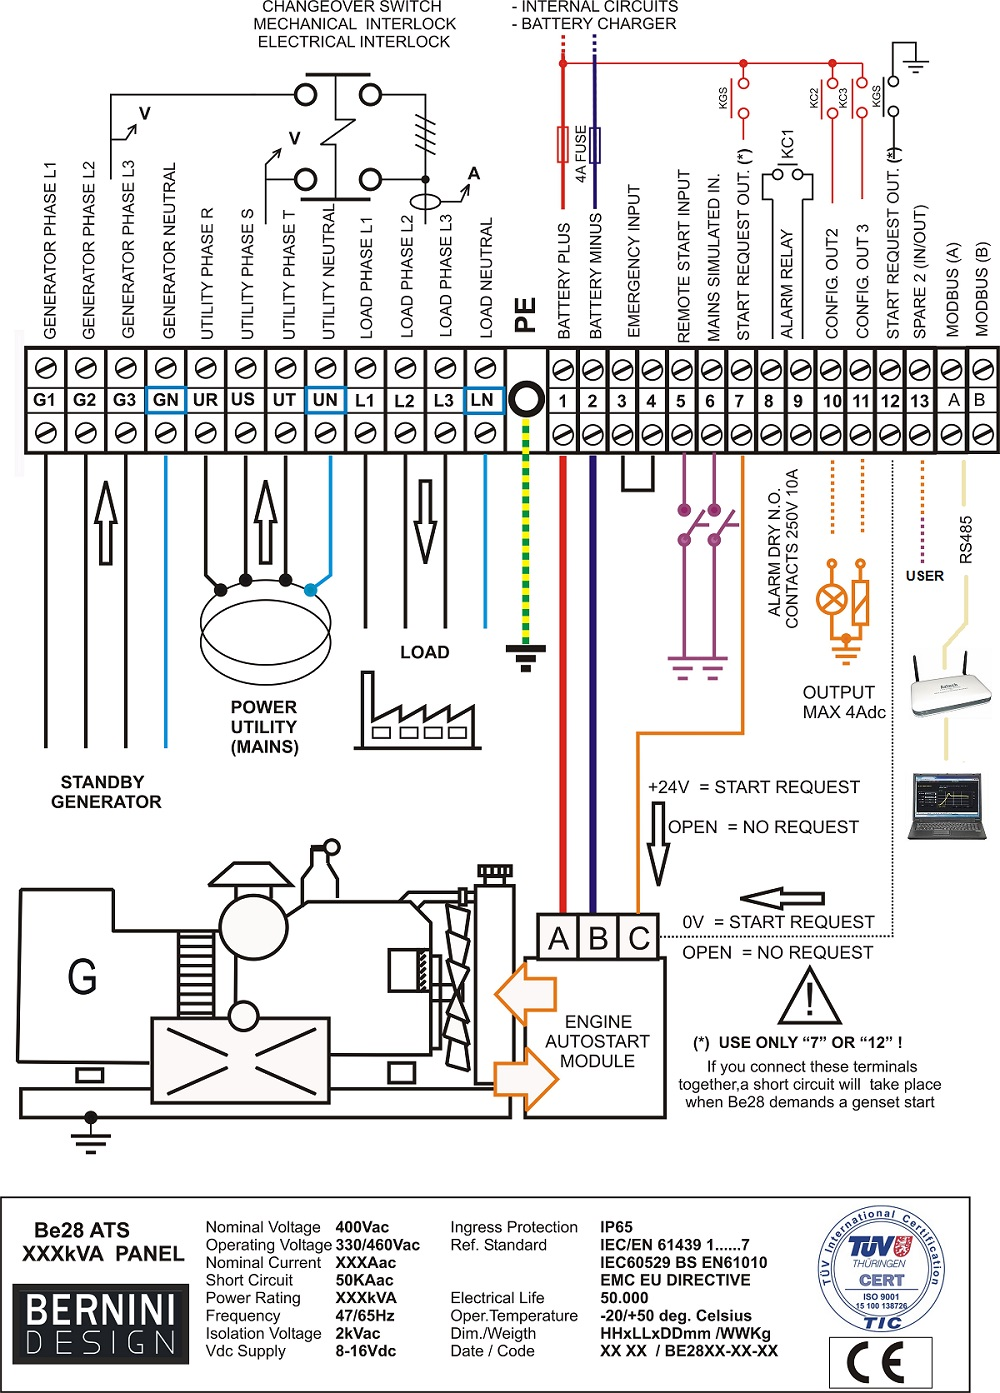 wiring diagram for auto transfer switch great installation of Home Lighting Wiring Diagram automatic transfer switch wiring diagram genset controller rh bernini design com auto transfer switch wiring diagram